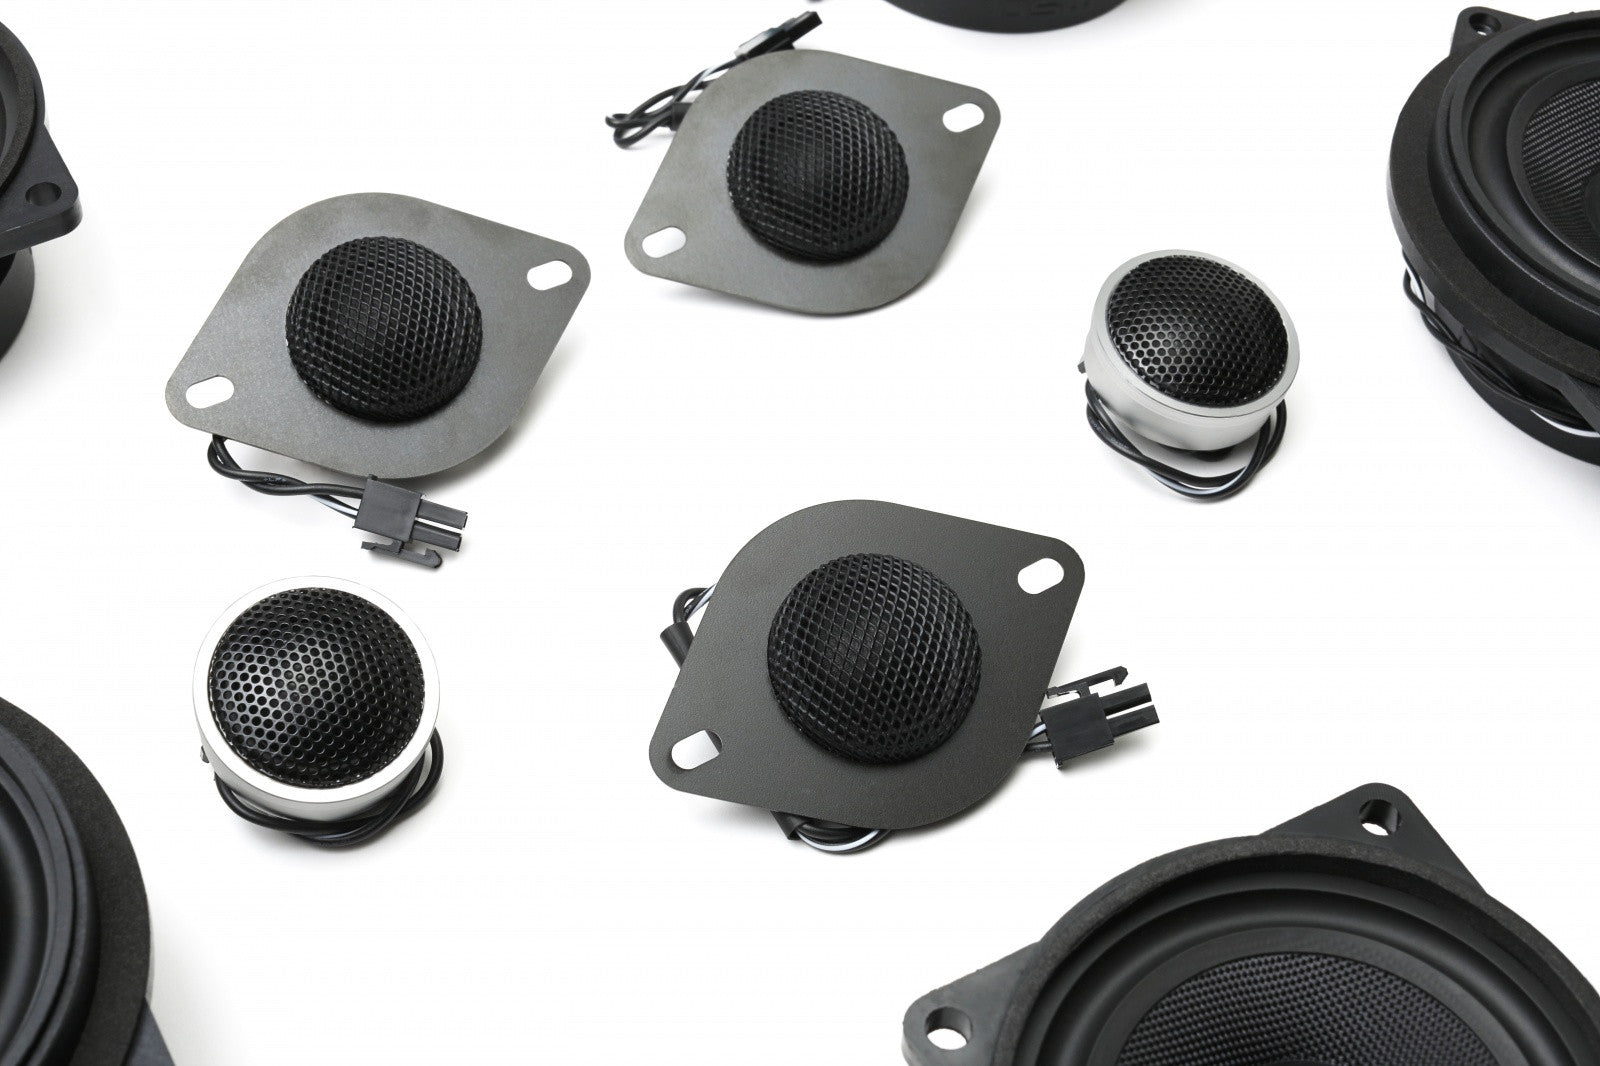 Stage One BMW Speaker Upgrade for F10 Sedan with Standard Hi-Fi